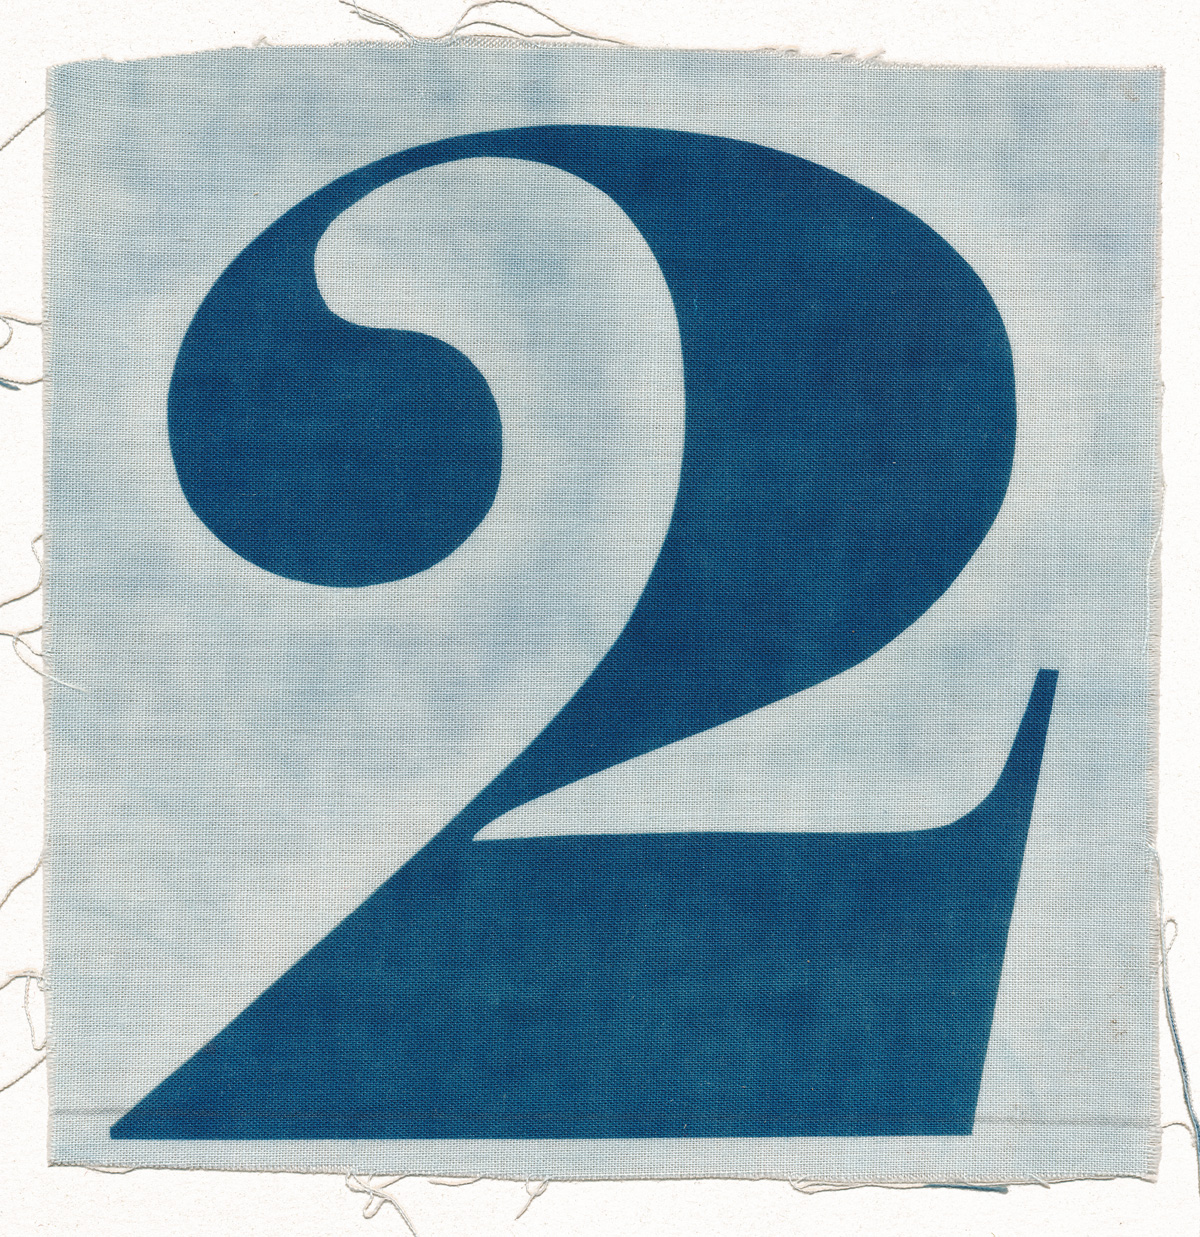 Two, cyanotype on cotton fabric, Mike Tedder